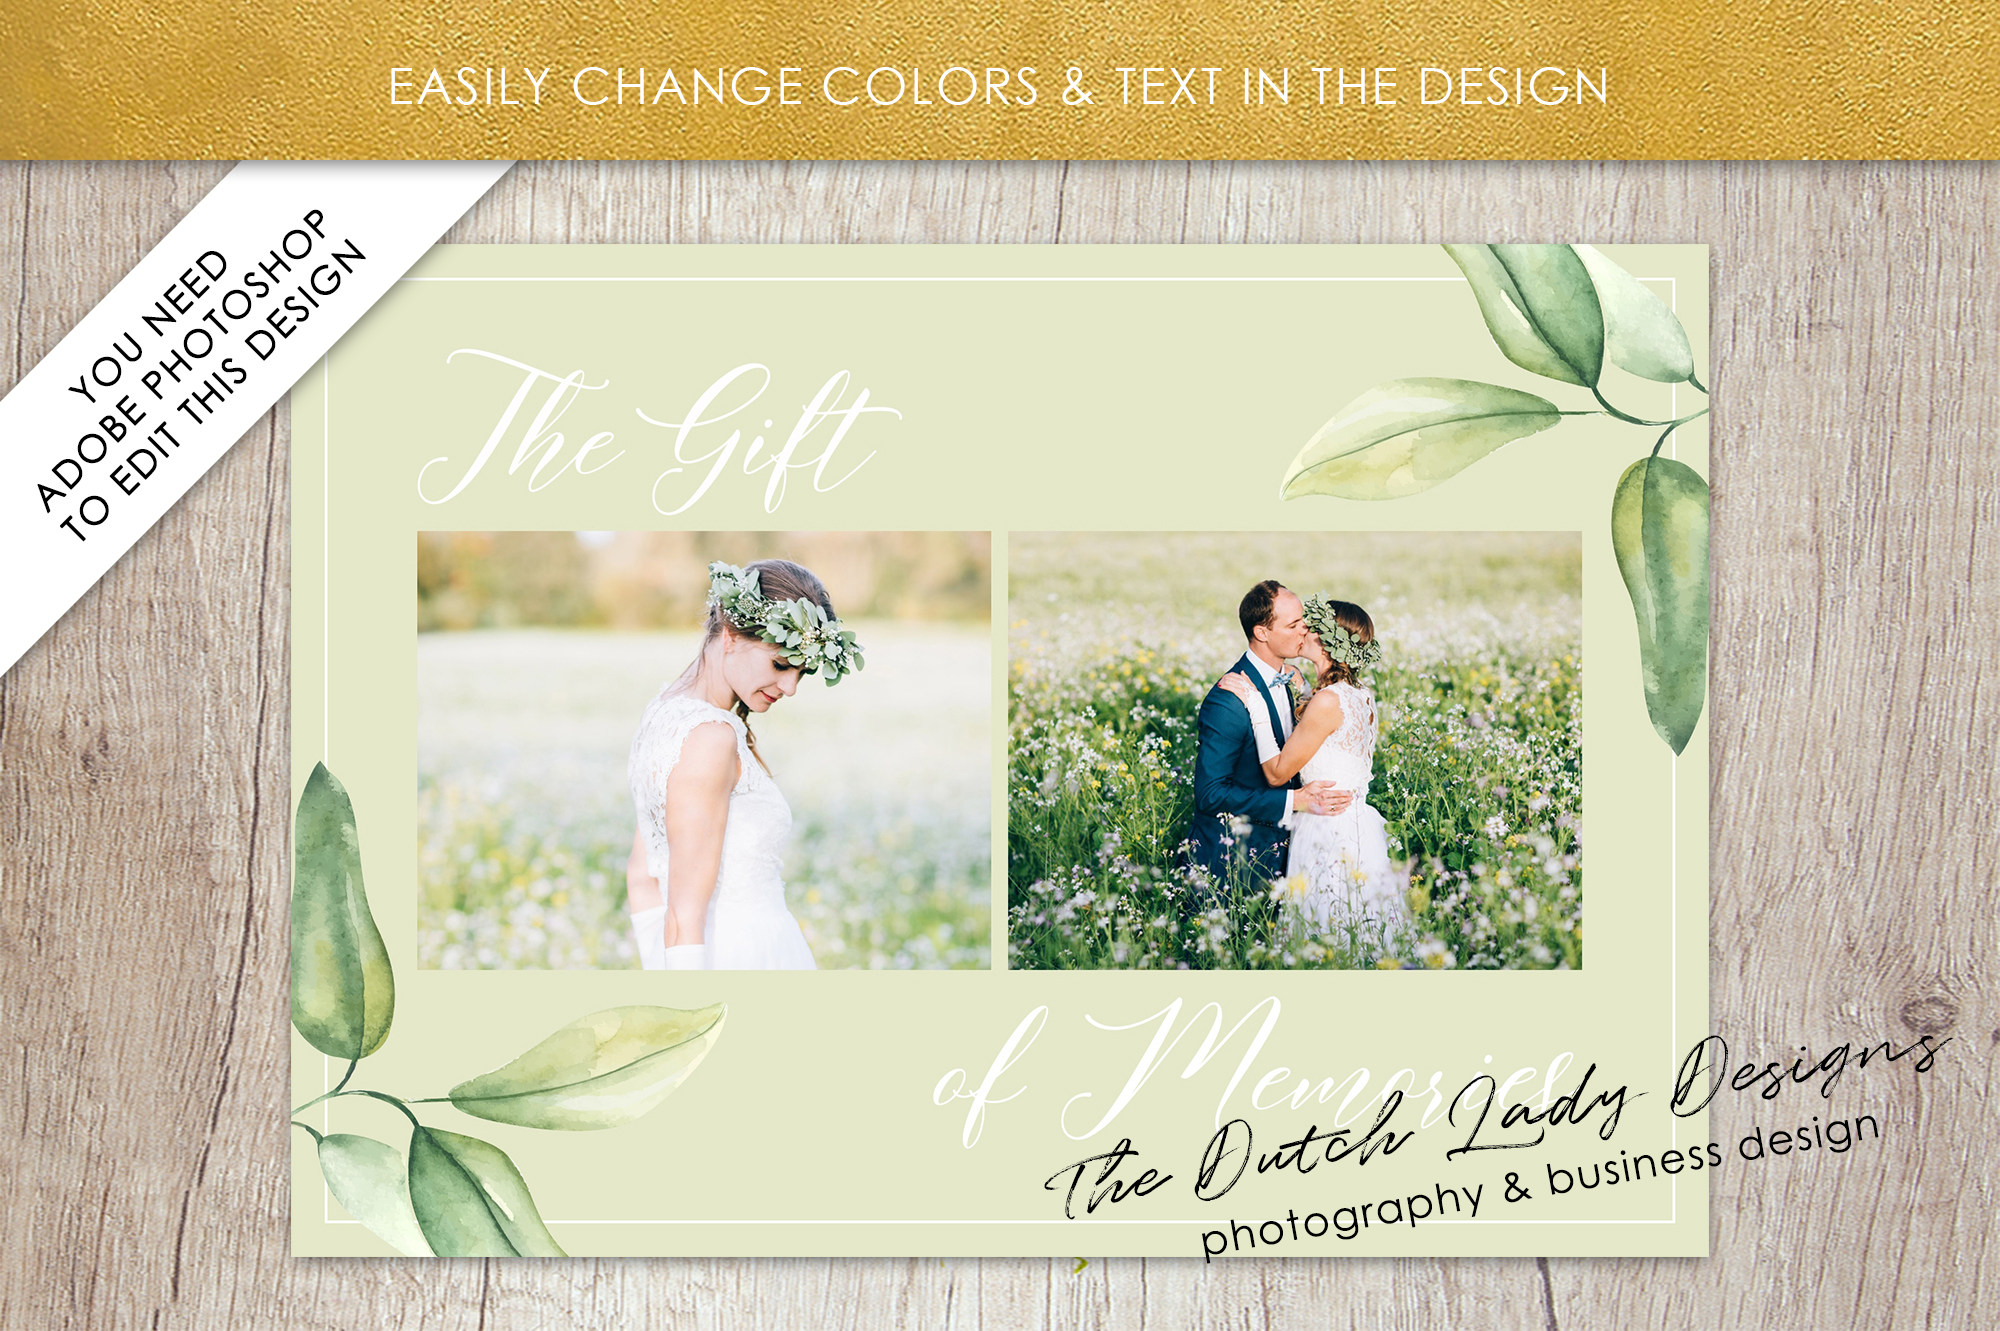 Photo Gift Card Template for Adobe Photoshop - #53 example image 4